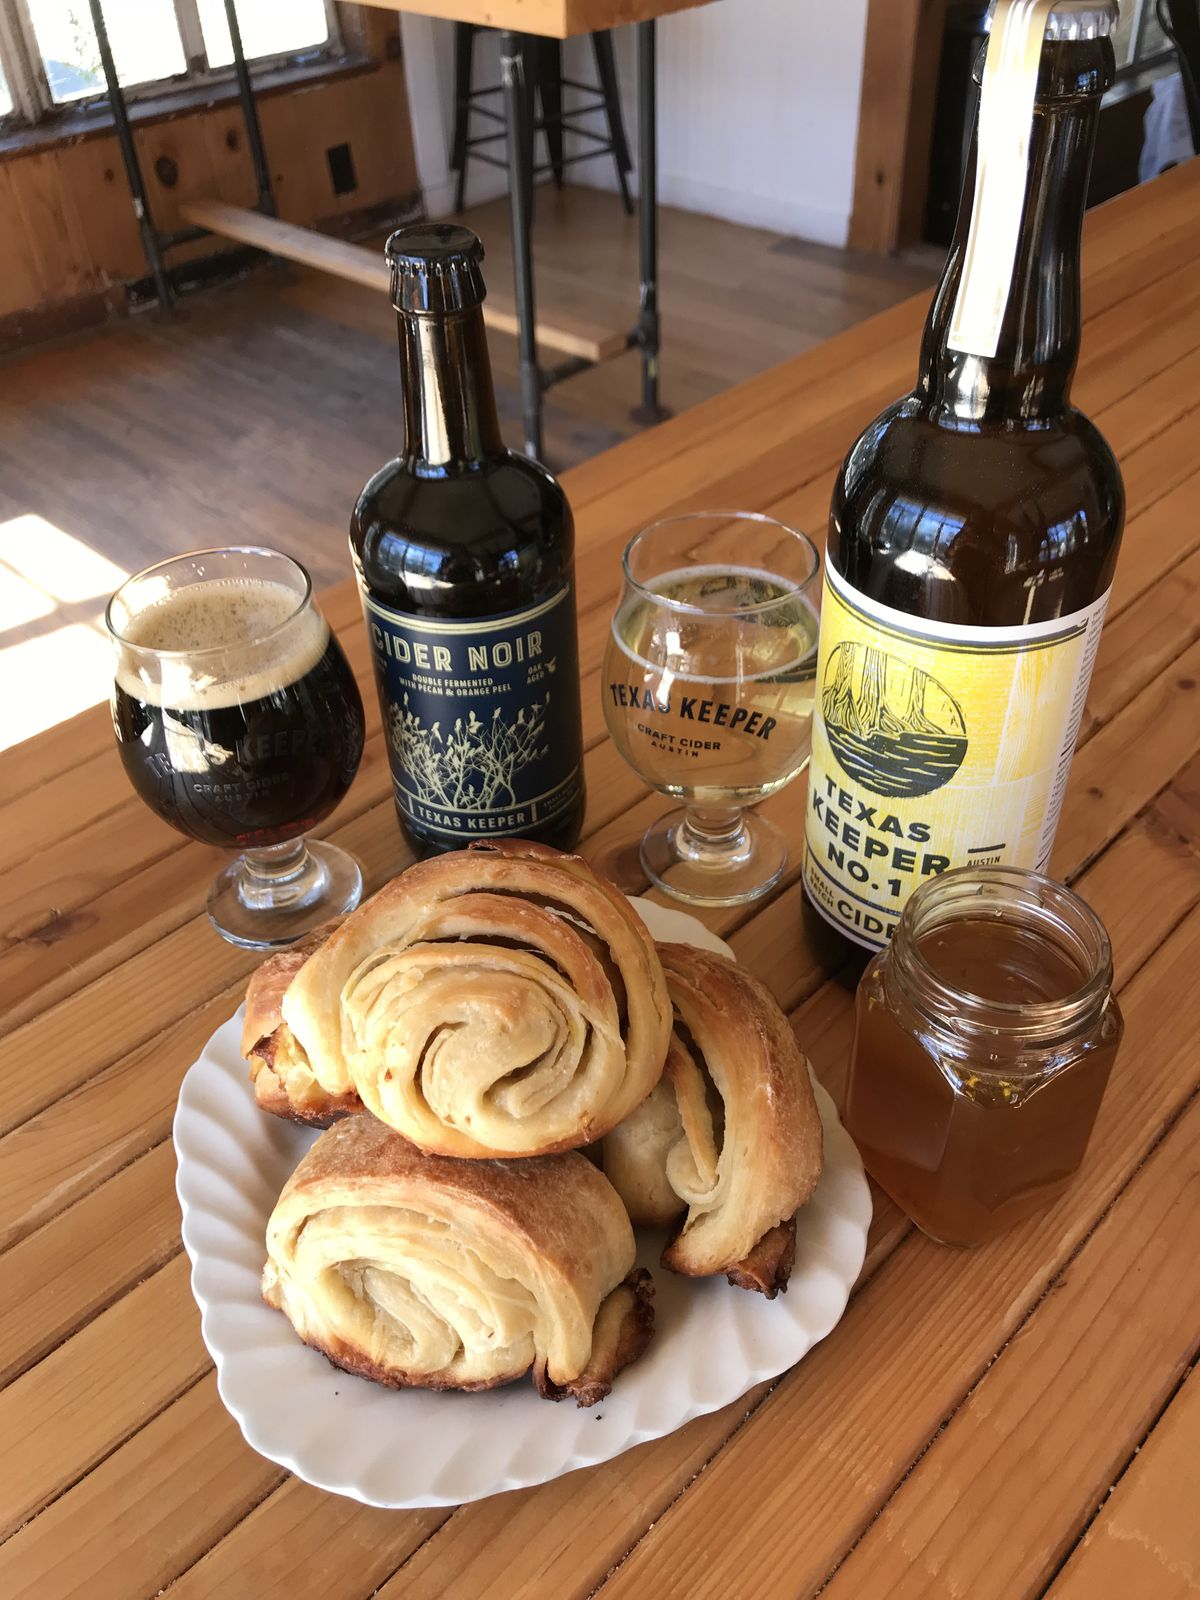 Naan croissants and cider